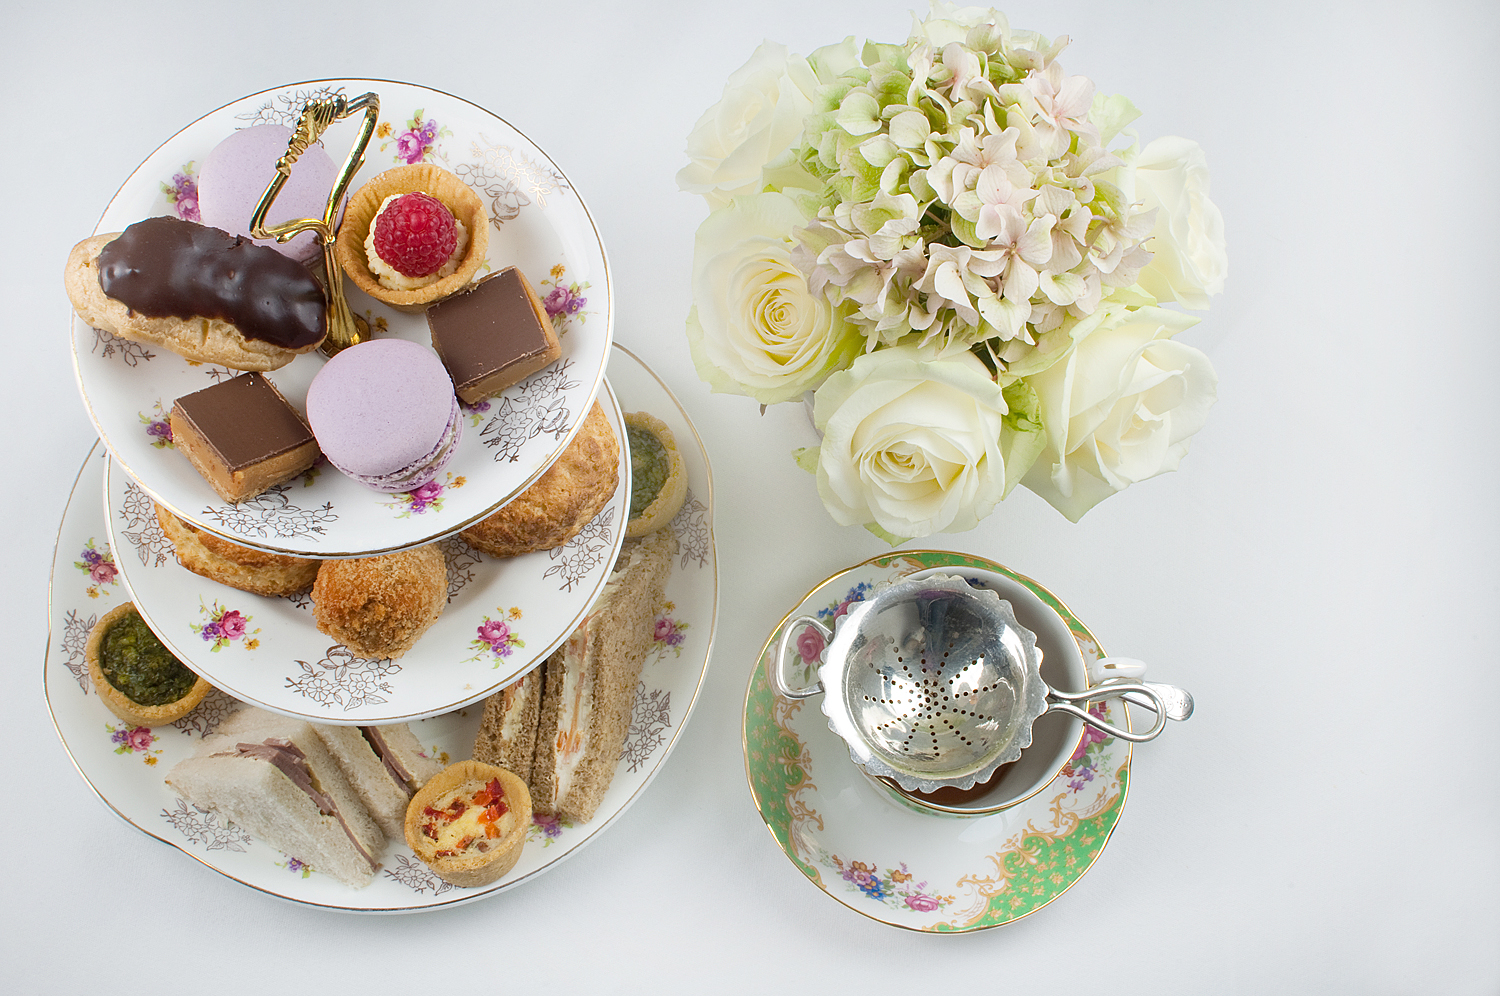 See you at your vintage afternoon tea!